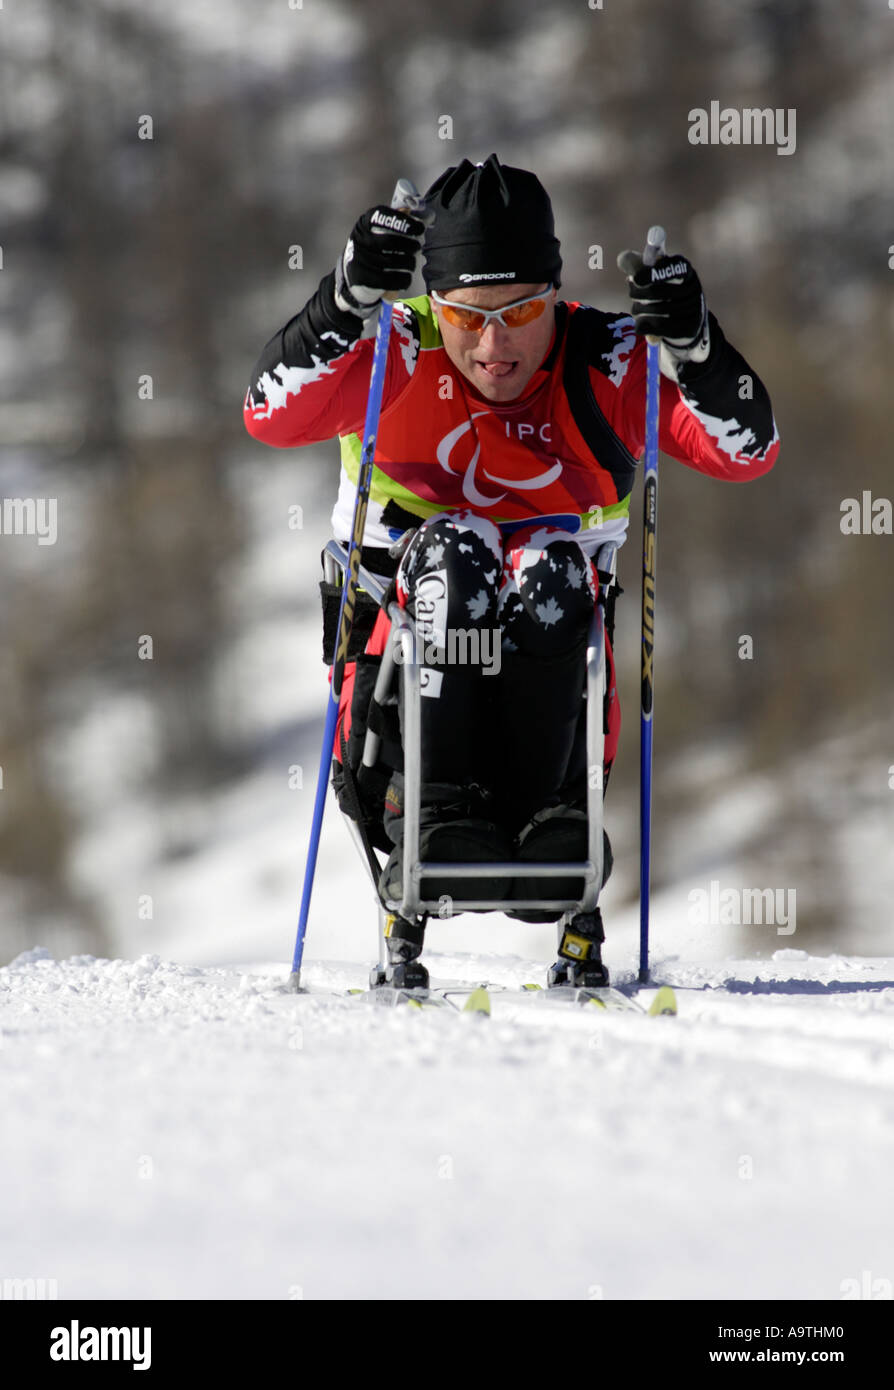 Jimmy Pelletier of Canada competes in the Mens Cross Country Skiing 5km Sitting - Stock Image